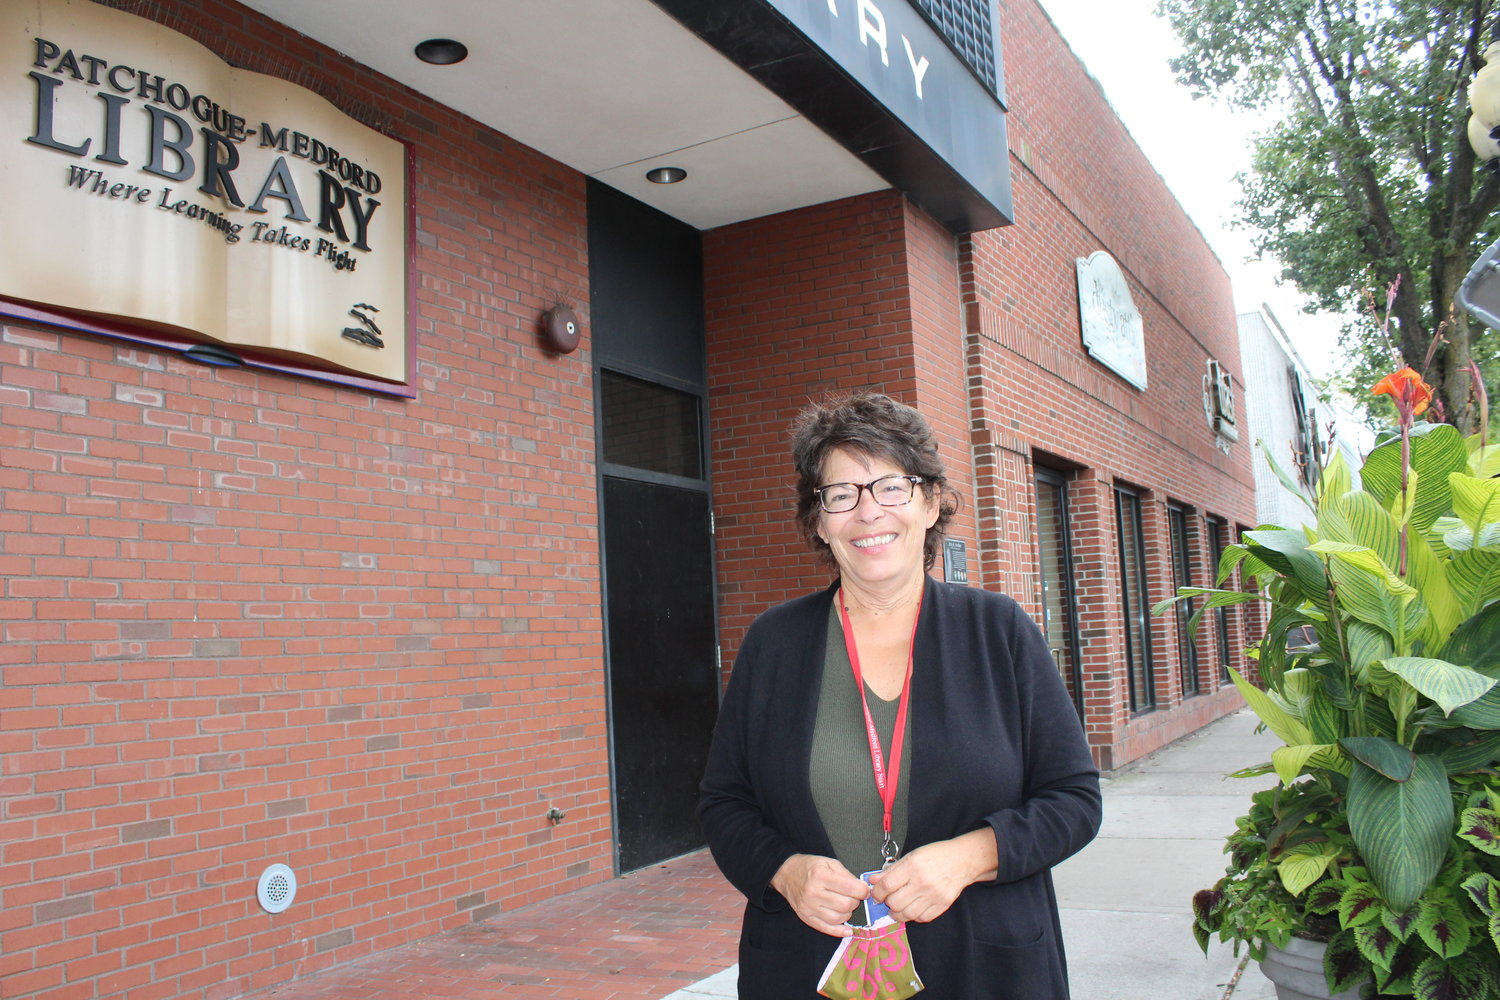 Spanish Outreach librarian Jean Kaleda, who started her department, is retiring from the Patchogue-Medford Library on Friday.